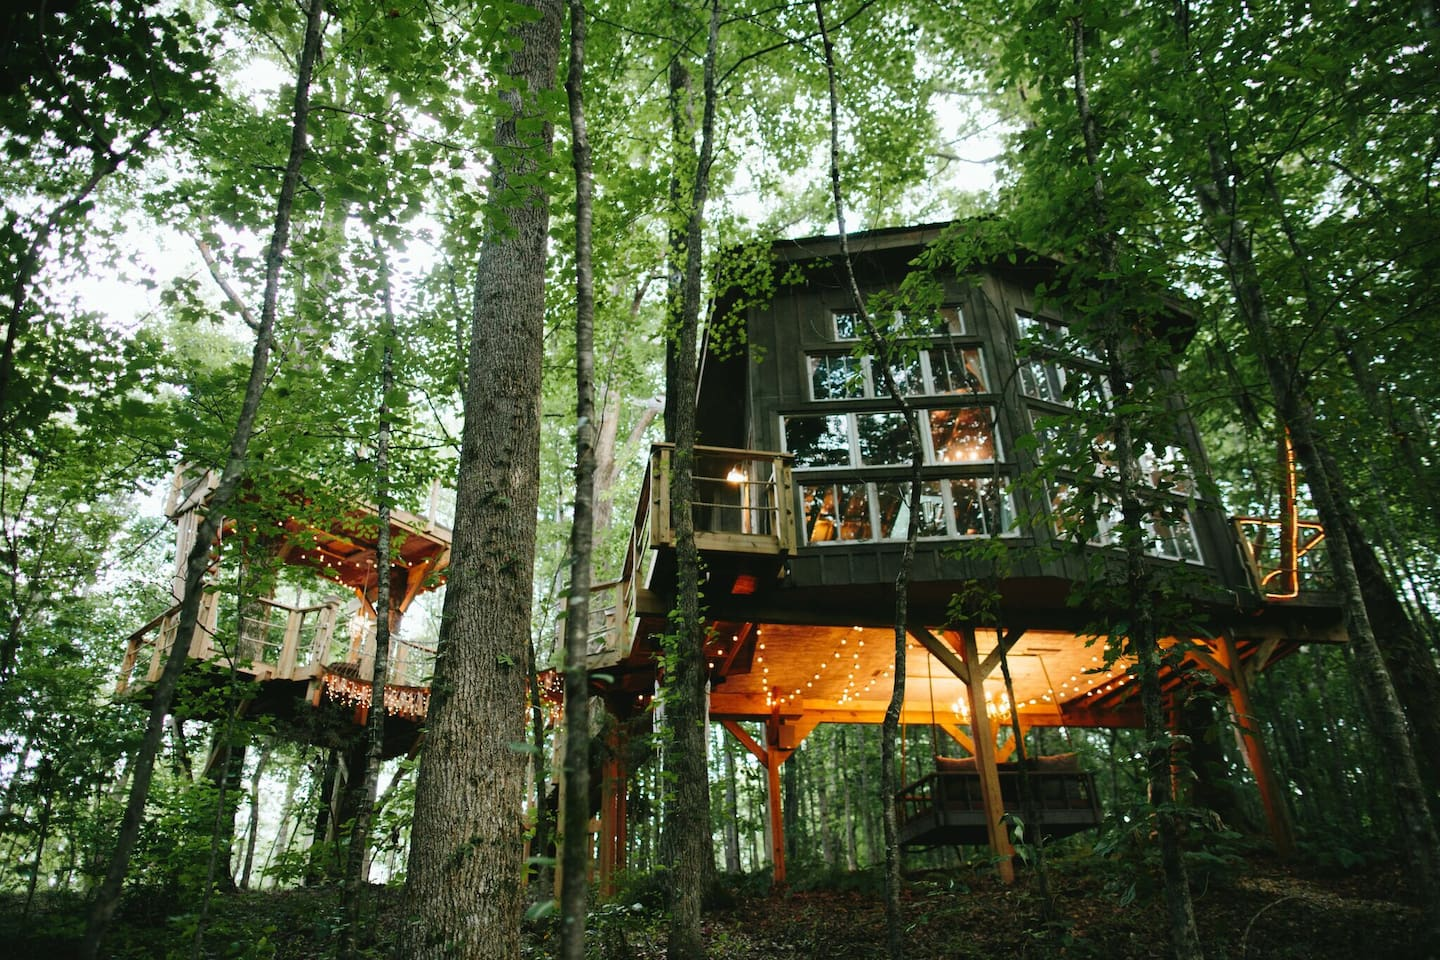 Treehouse Rental in South Carolina on AirBnB